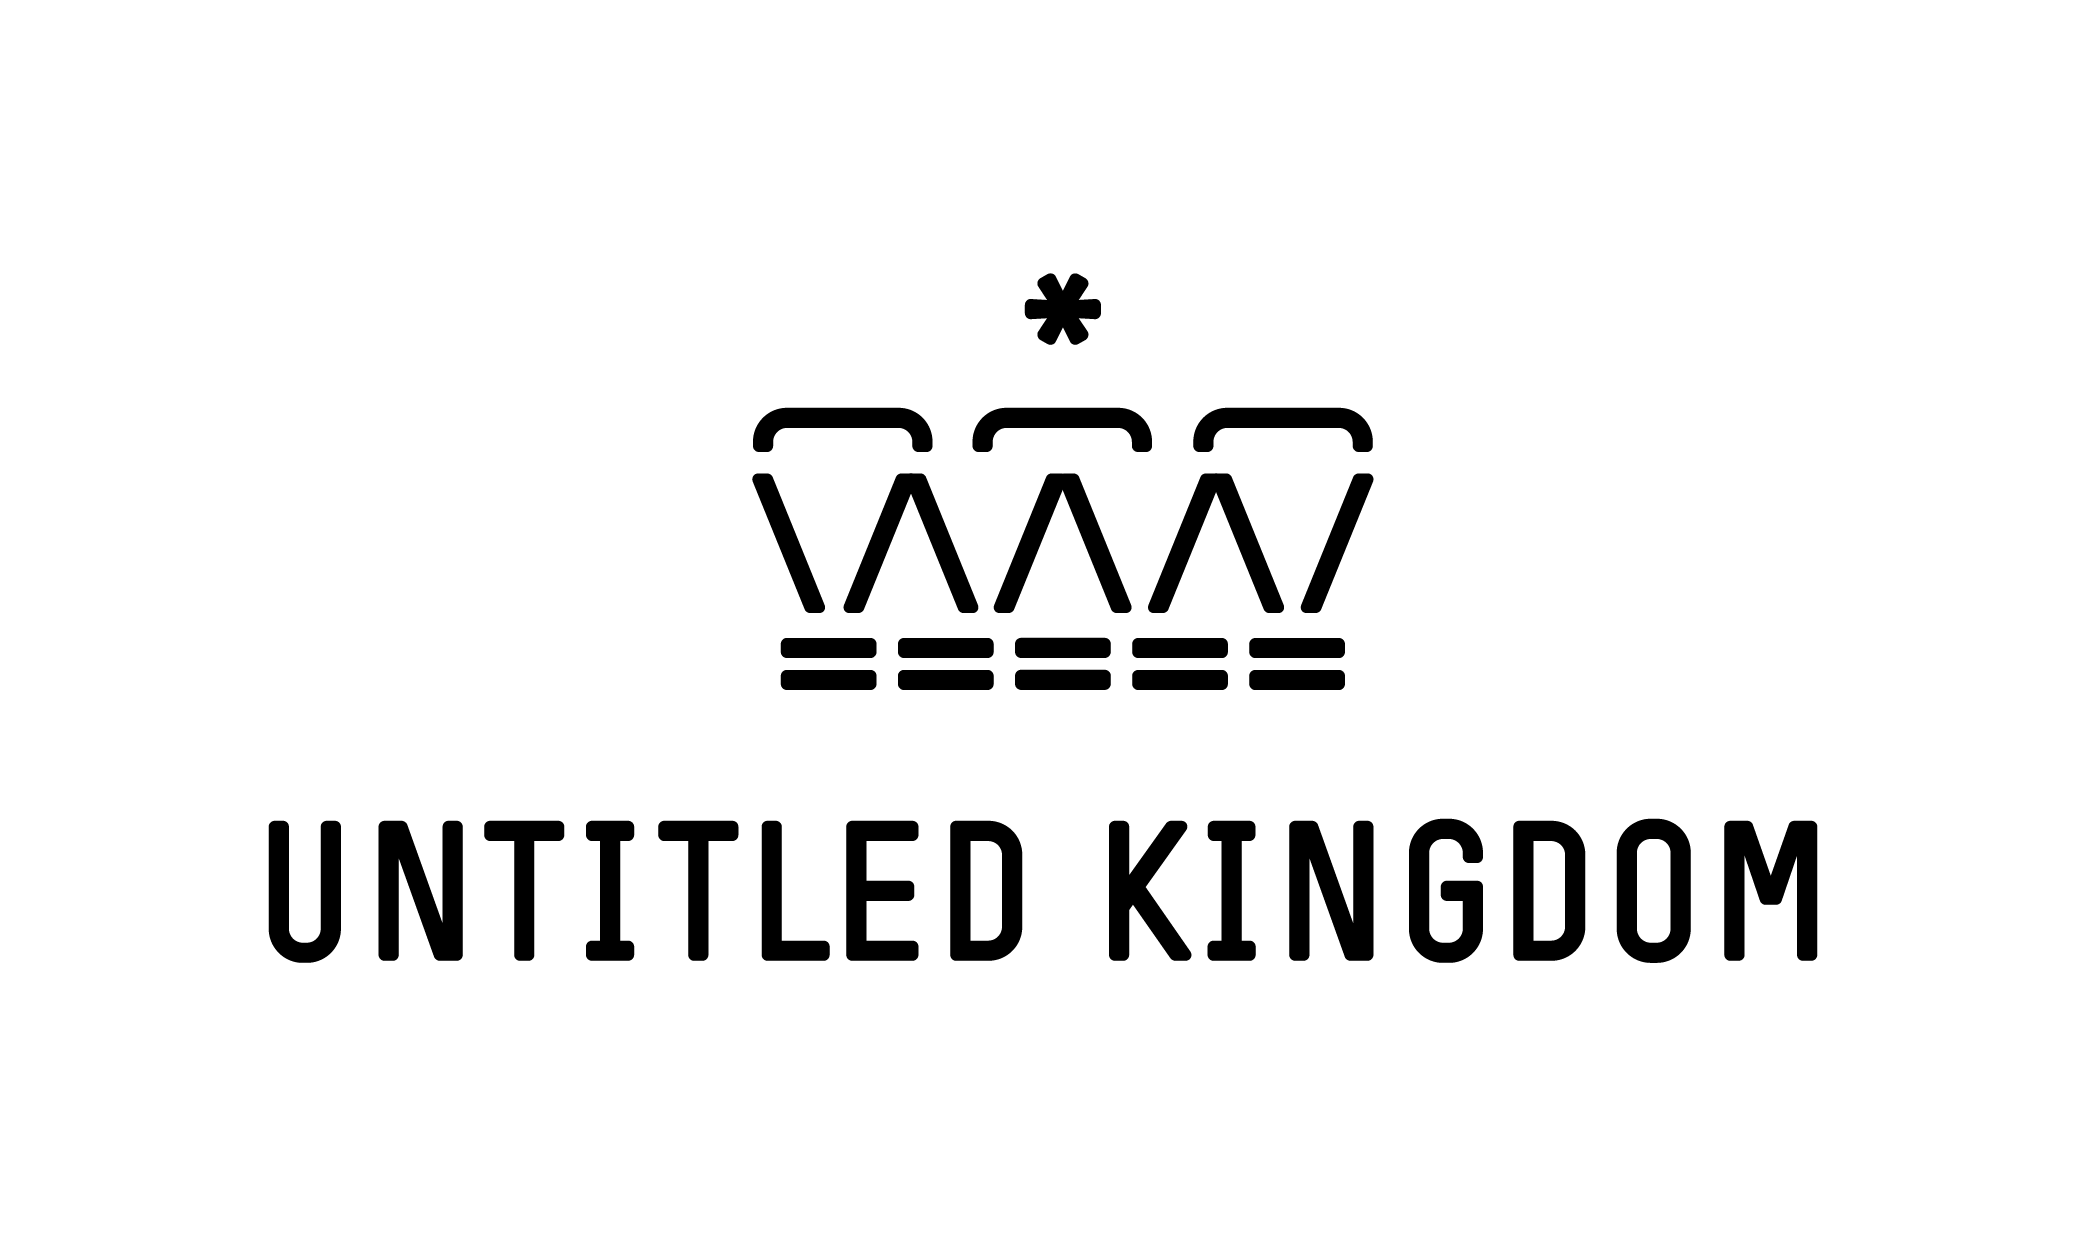 Untitled Kingdom logo